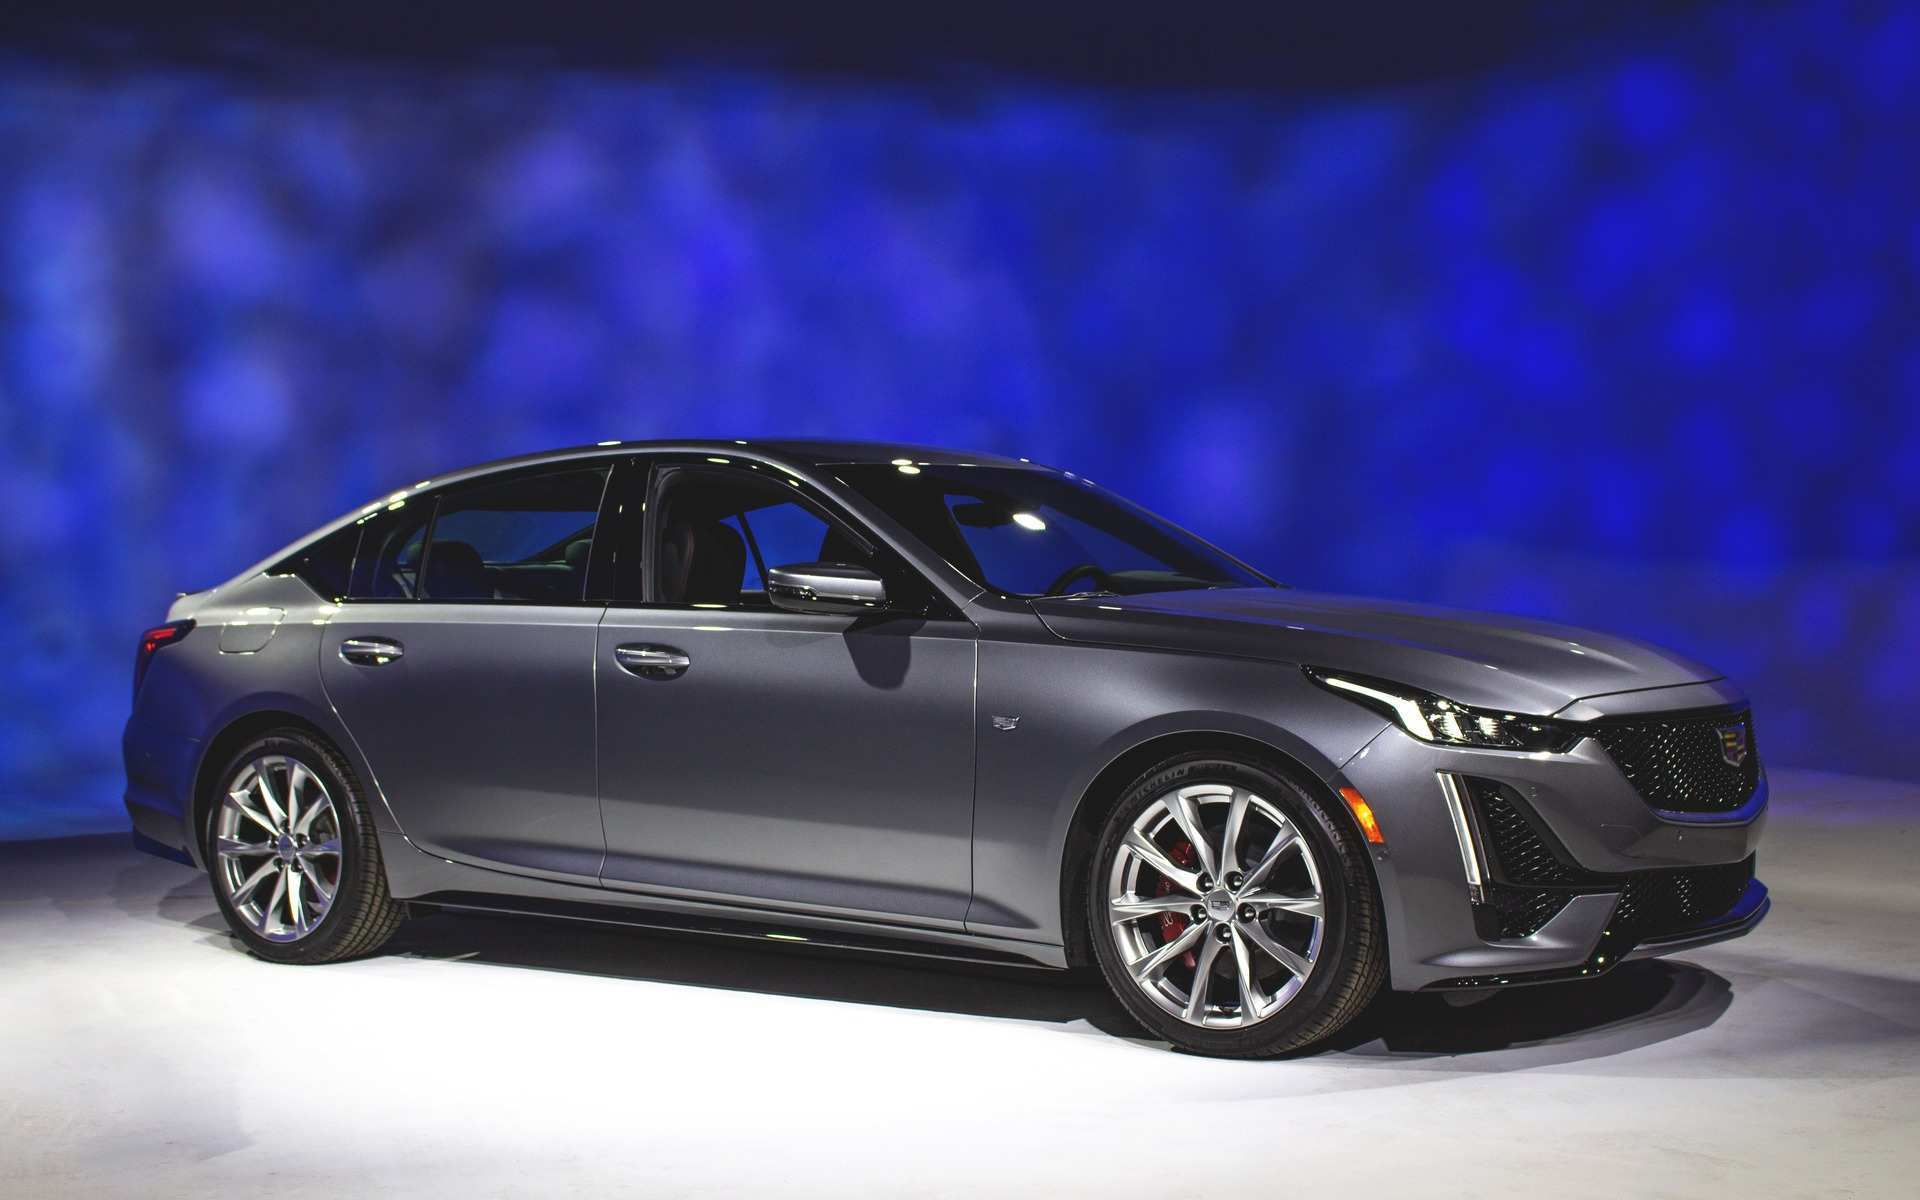 98 All New 2020 Cadillac Ct5 Horsepower Spesification